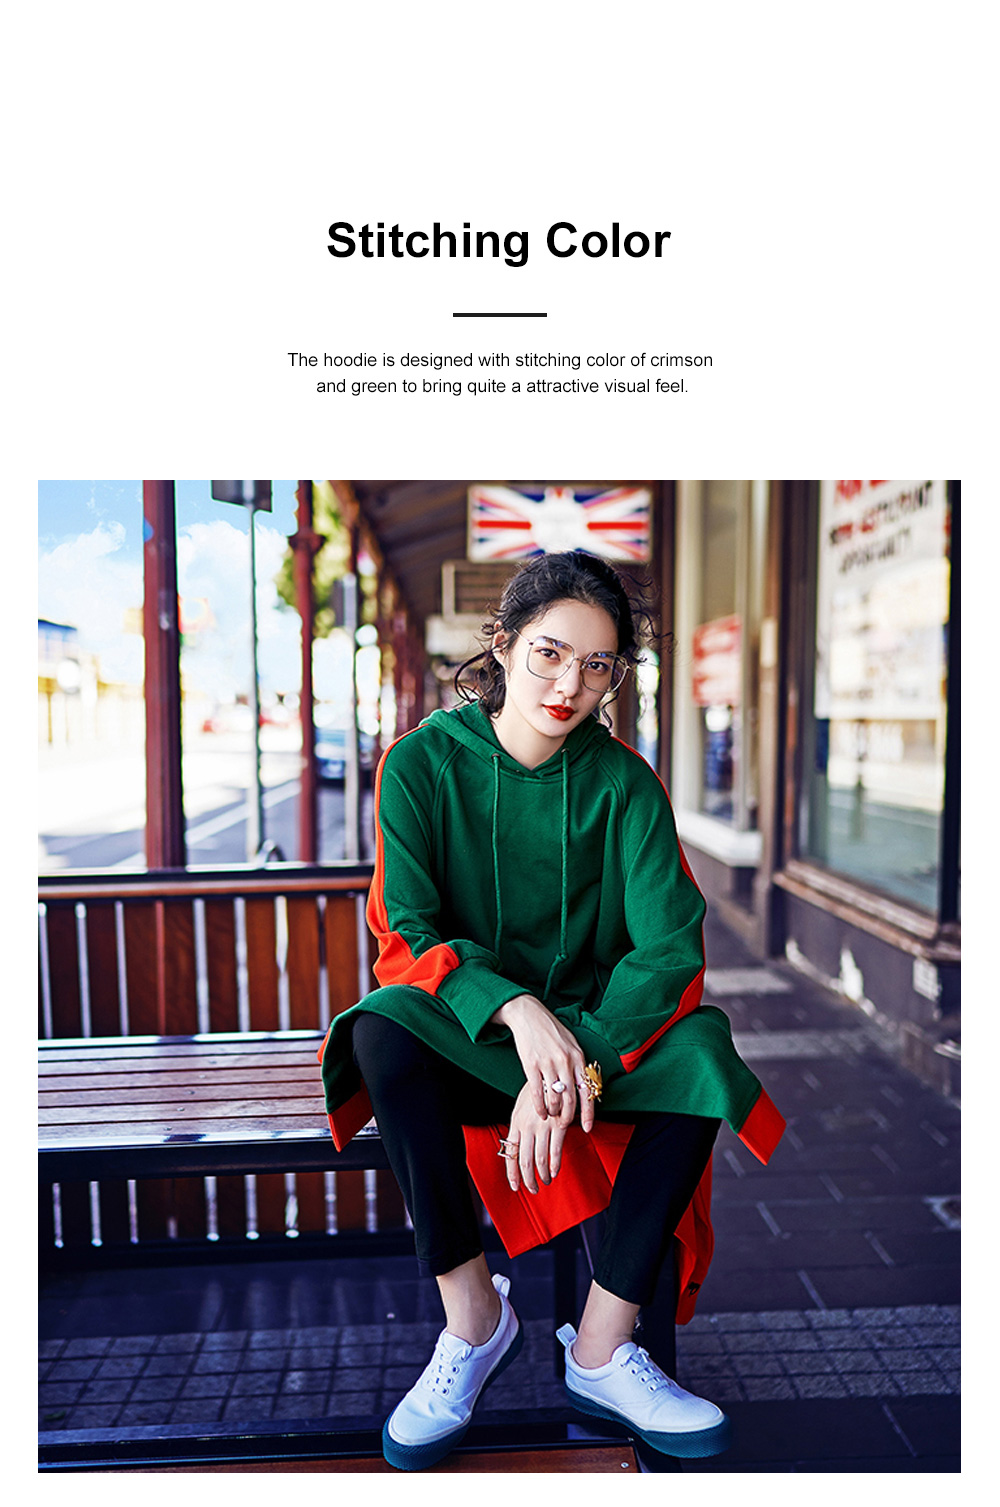 Stitching Color Hoodie Loose Style Hoodie for Women Fashionable Cotton Overcoat Spring Autumn 2019 3